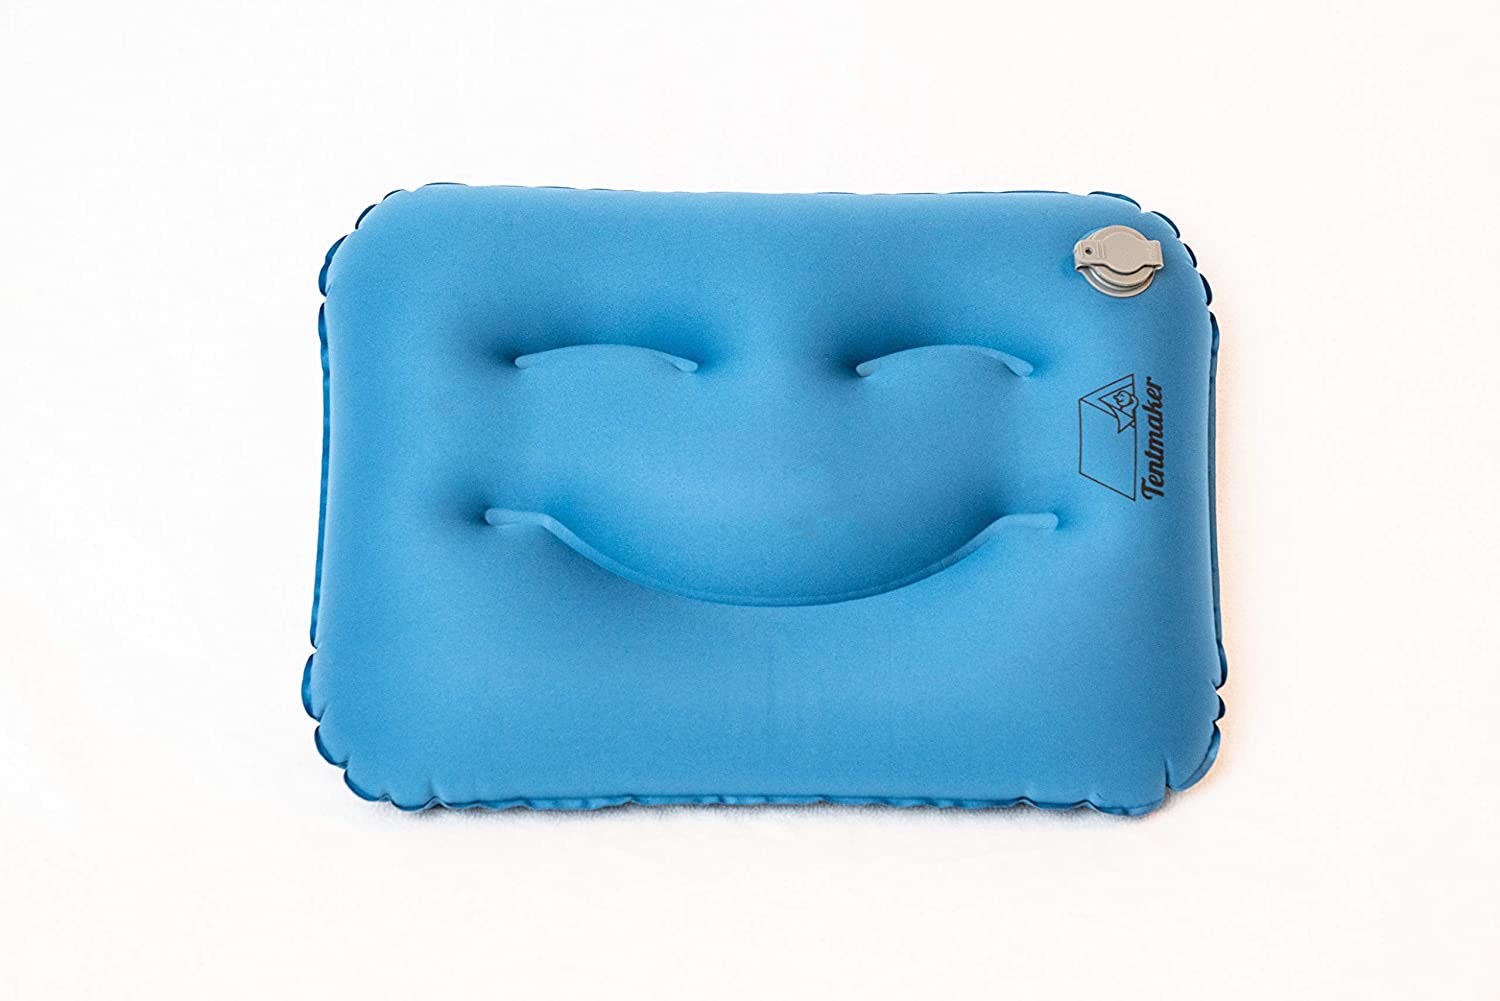 Backpacking or Travel Tentmaker The Happy Camper Blue Smile Pillow Ultra Light Ultra Soft Quick-Inflating Cushion for Camping